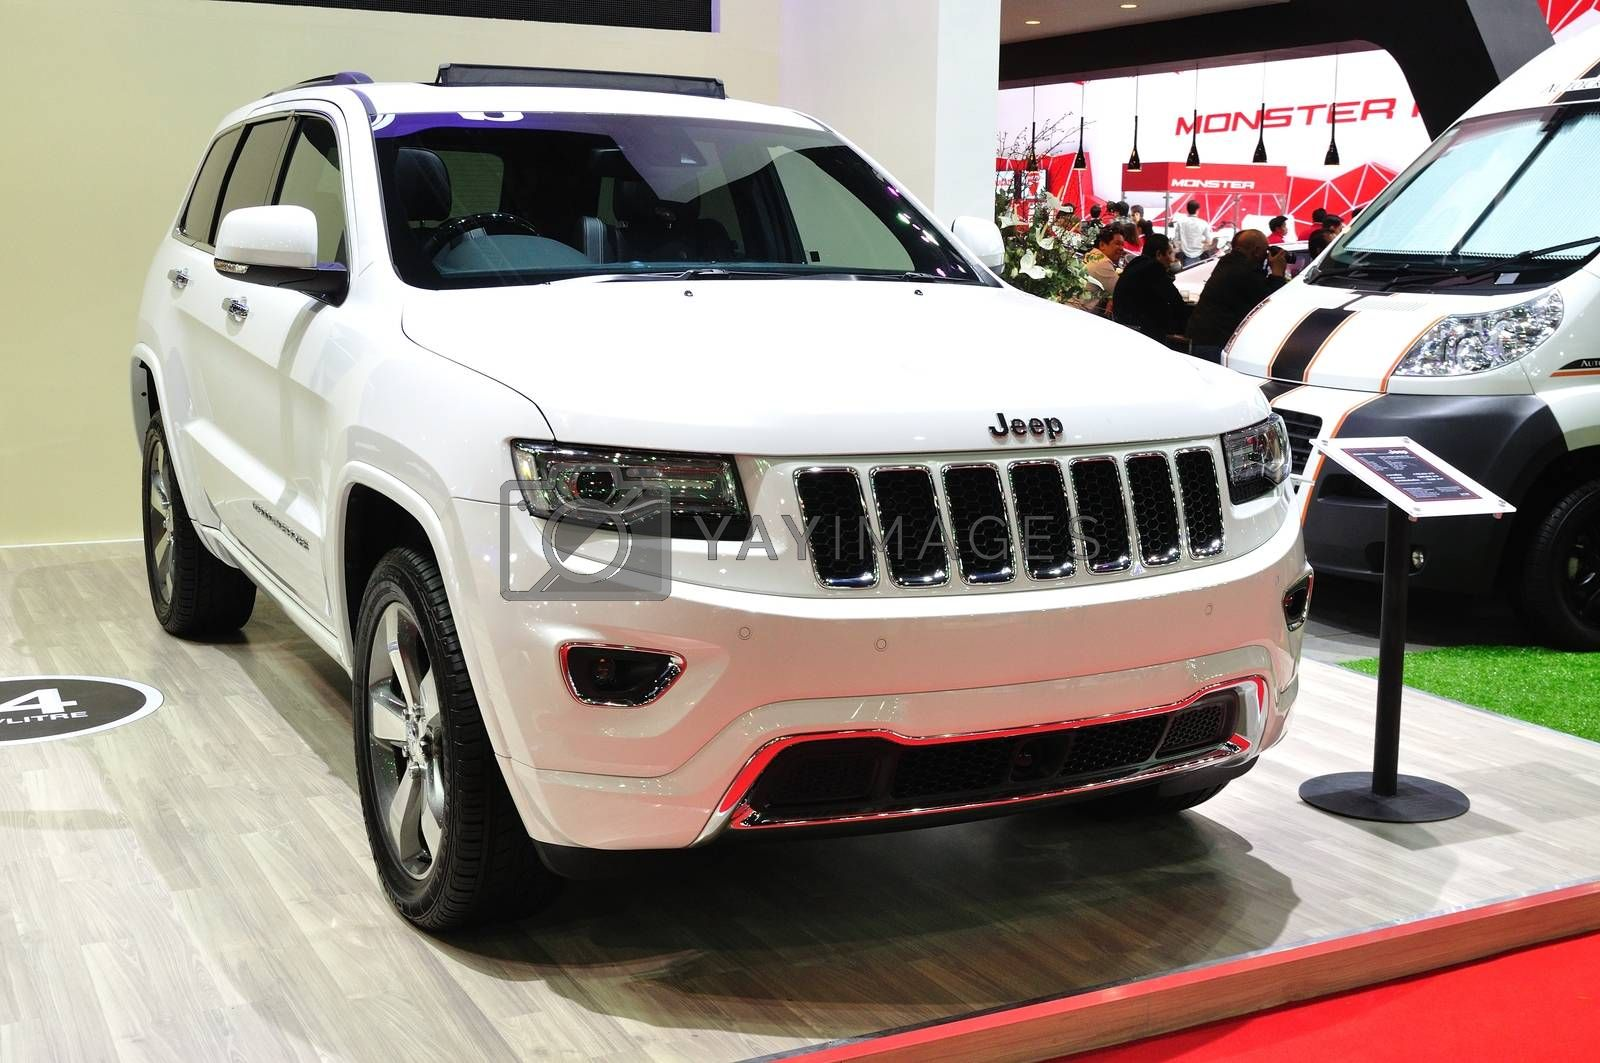 NONTHABURI - March 25: New Jeep Grand Cherokee on display at The by thampapon